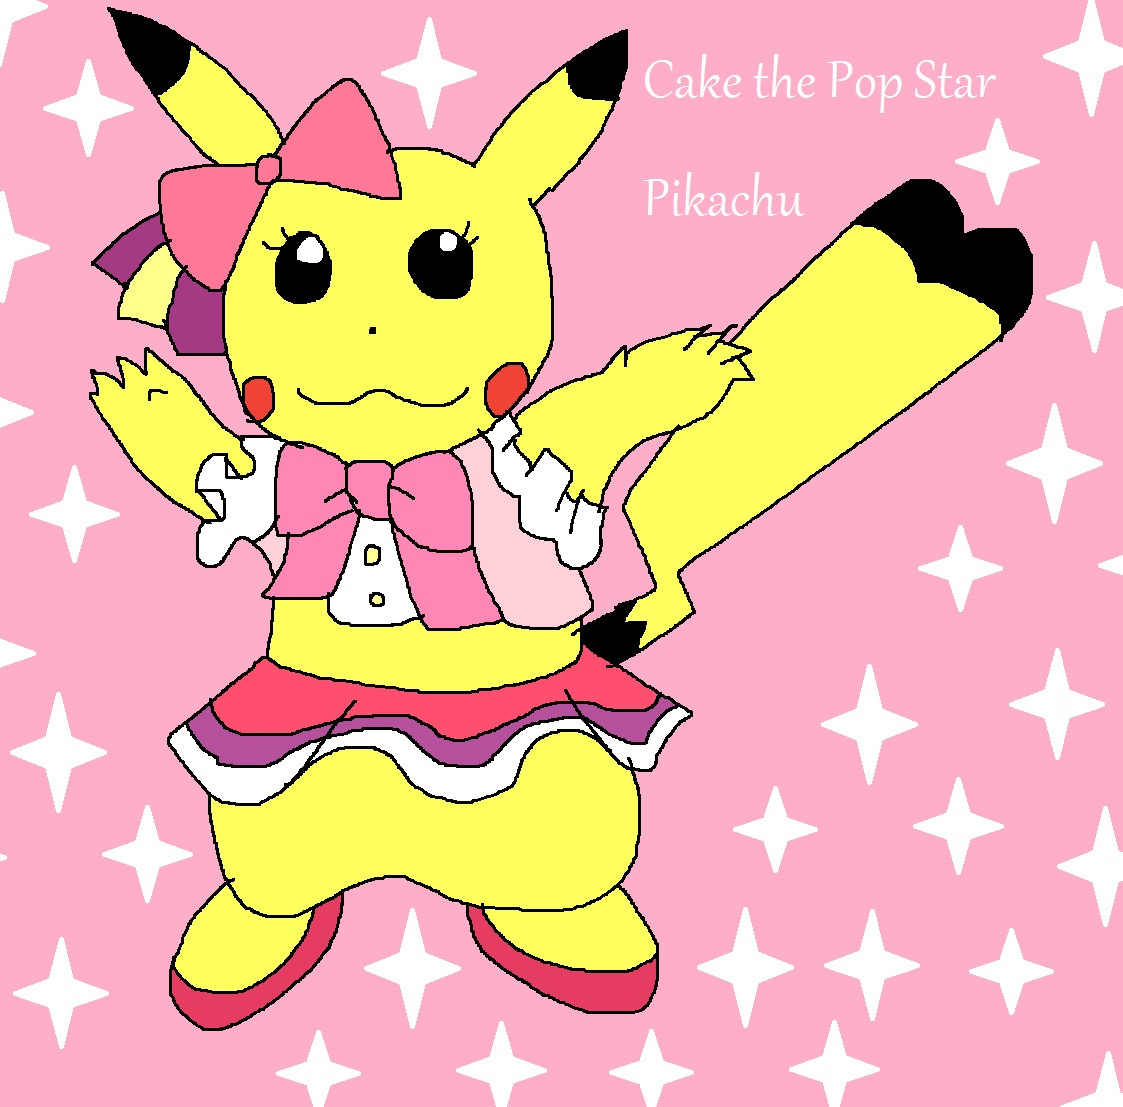 Cake the Pop Star Pikachu by Rainbow-Dash-Rockz